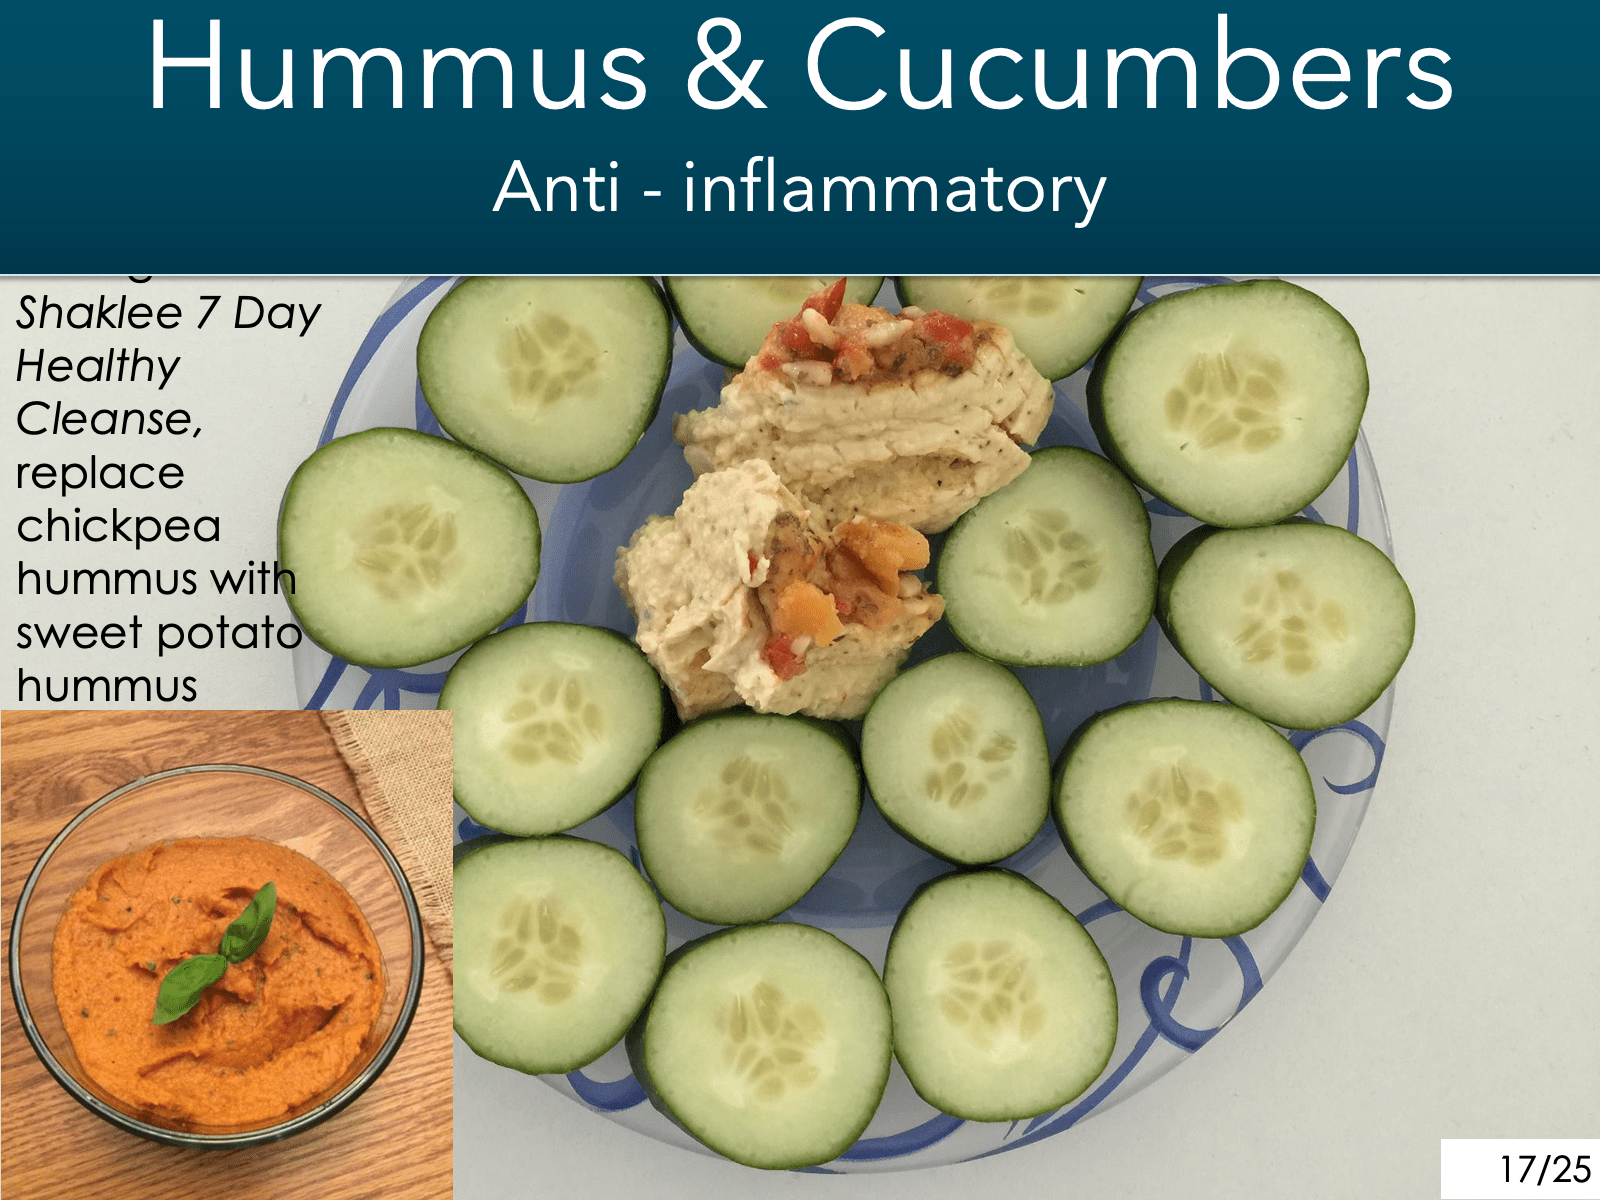 -hummus and cucumbers ------- Are anti-inflammatory-------  -During the '7 day cleanse', -------  swap the legume chickpea hummus-------  With sweet potato or carrot hummus.